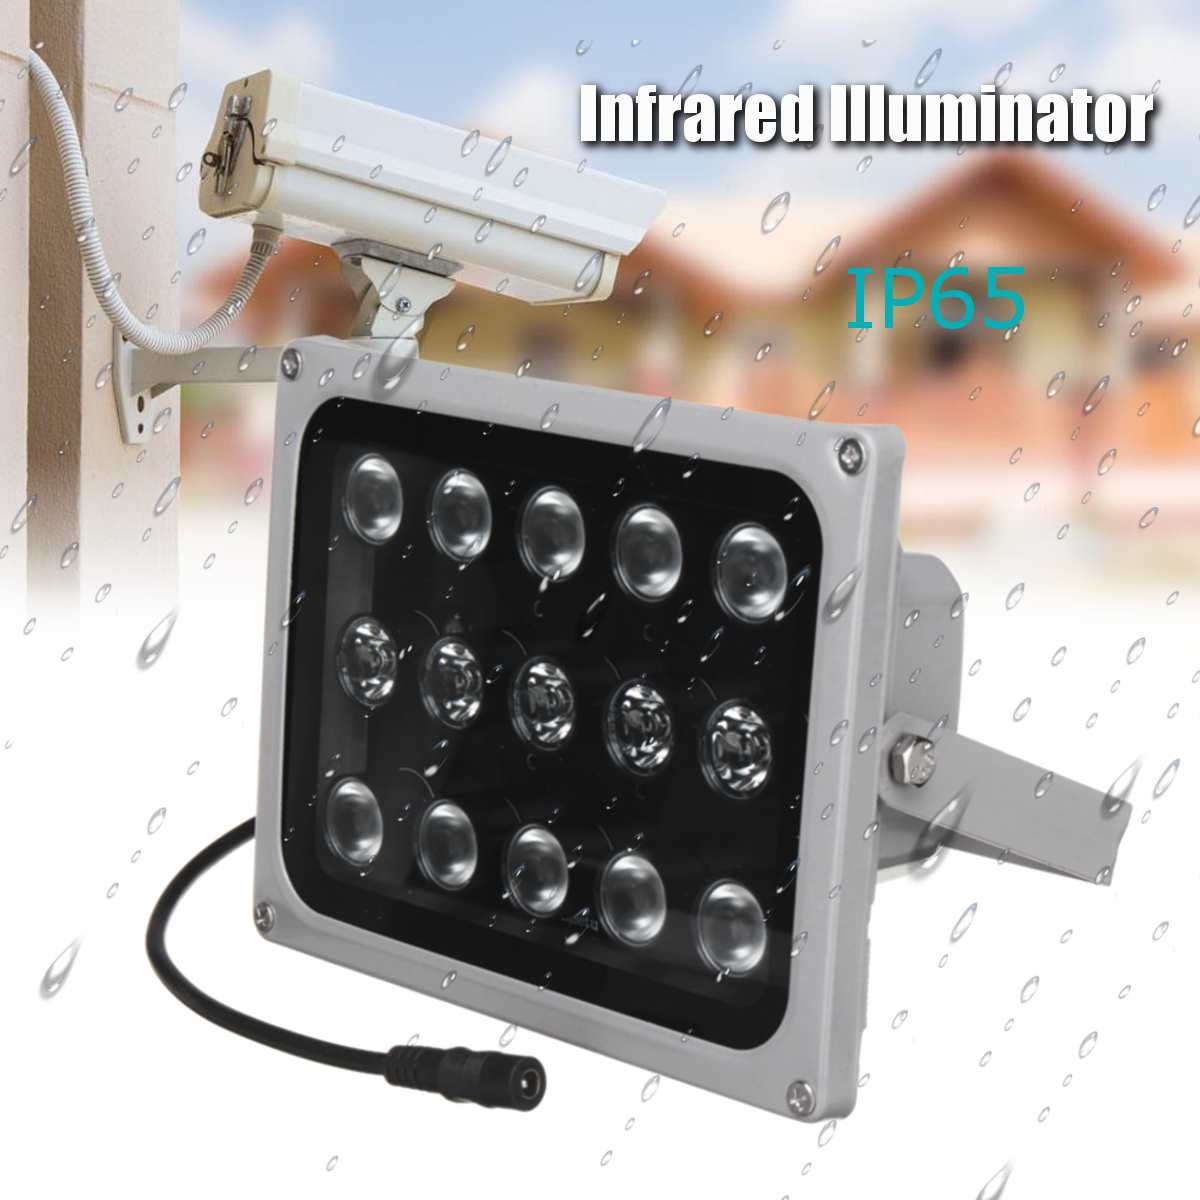 12V 15 LED Infrared for Illuminators Light Lamp Night Vision Metal Fill Light For CCTV Security Accessory Waterproof IP65|CCTV Accessories| |  - title=